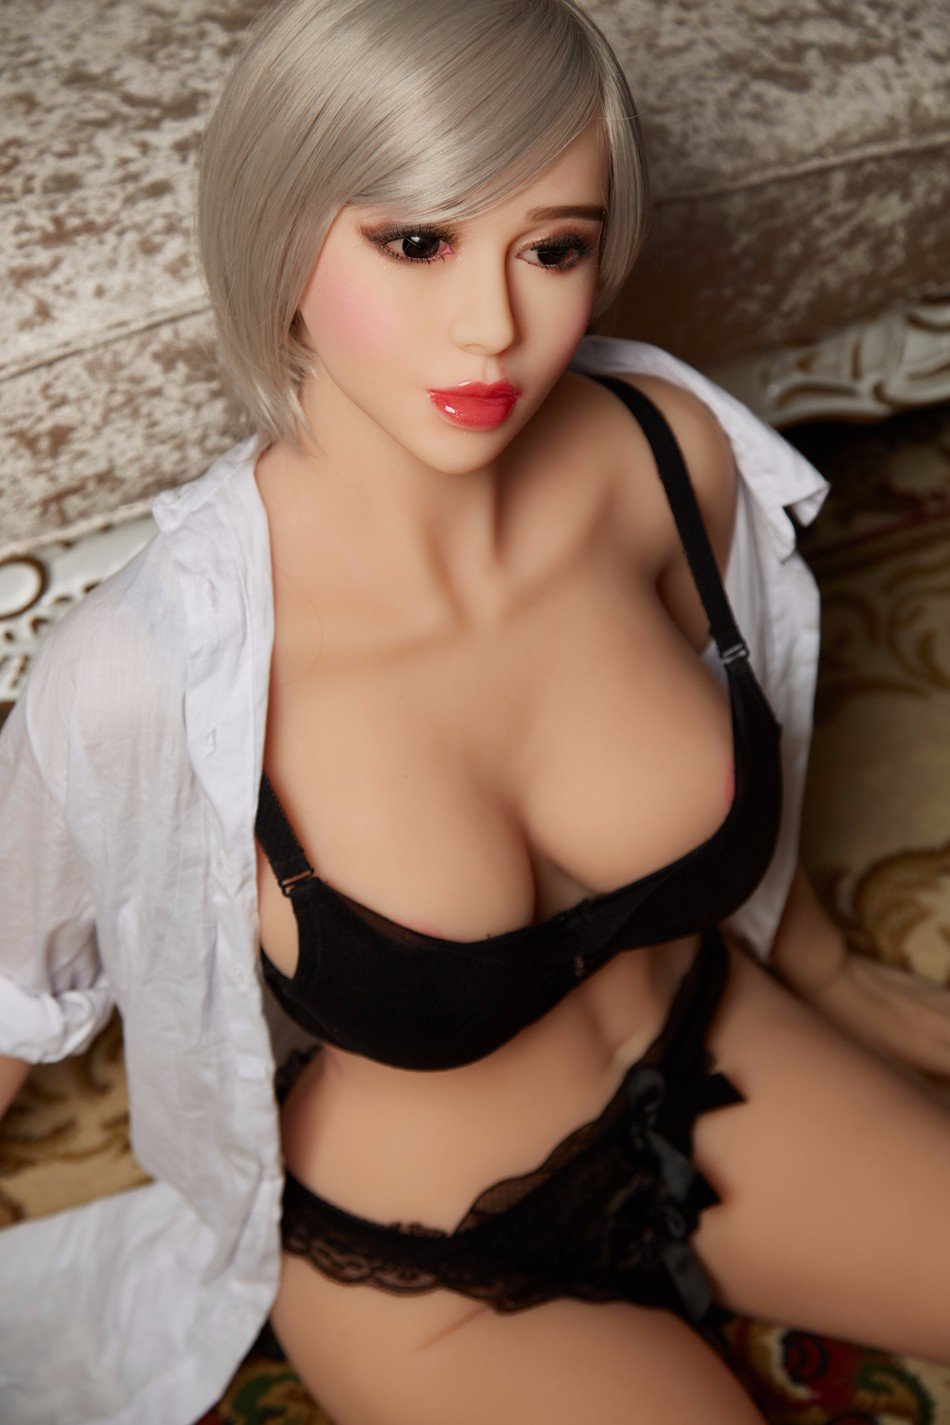 Hentai love doll